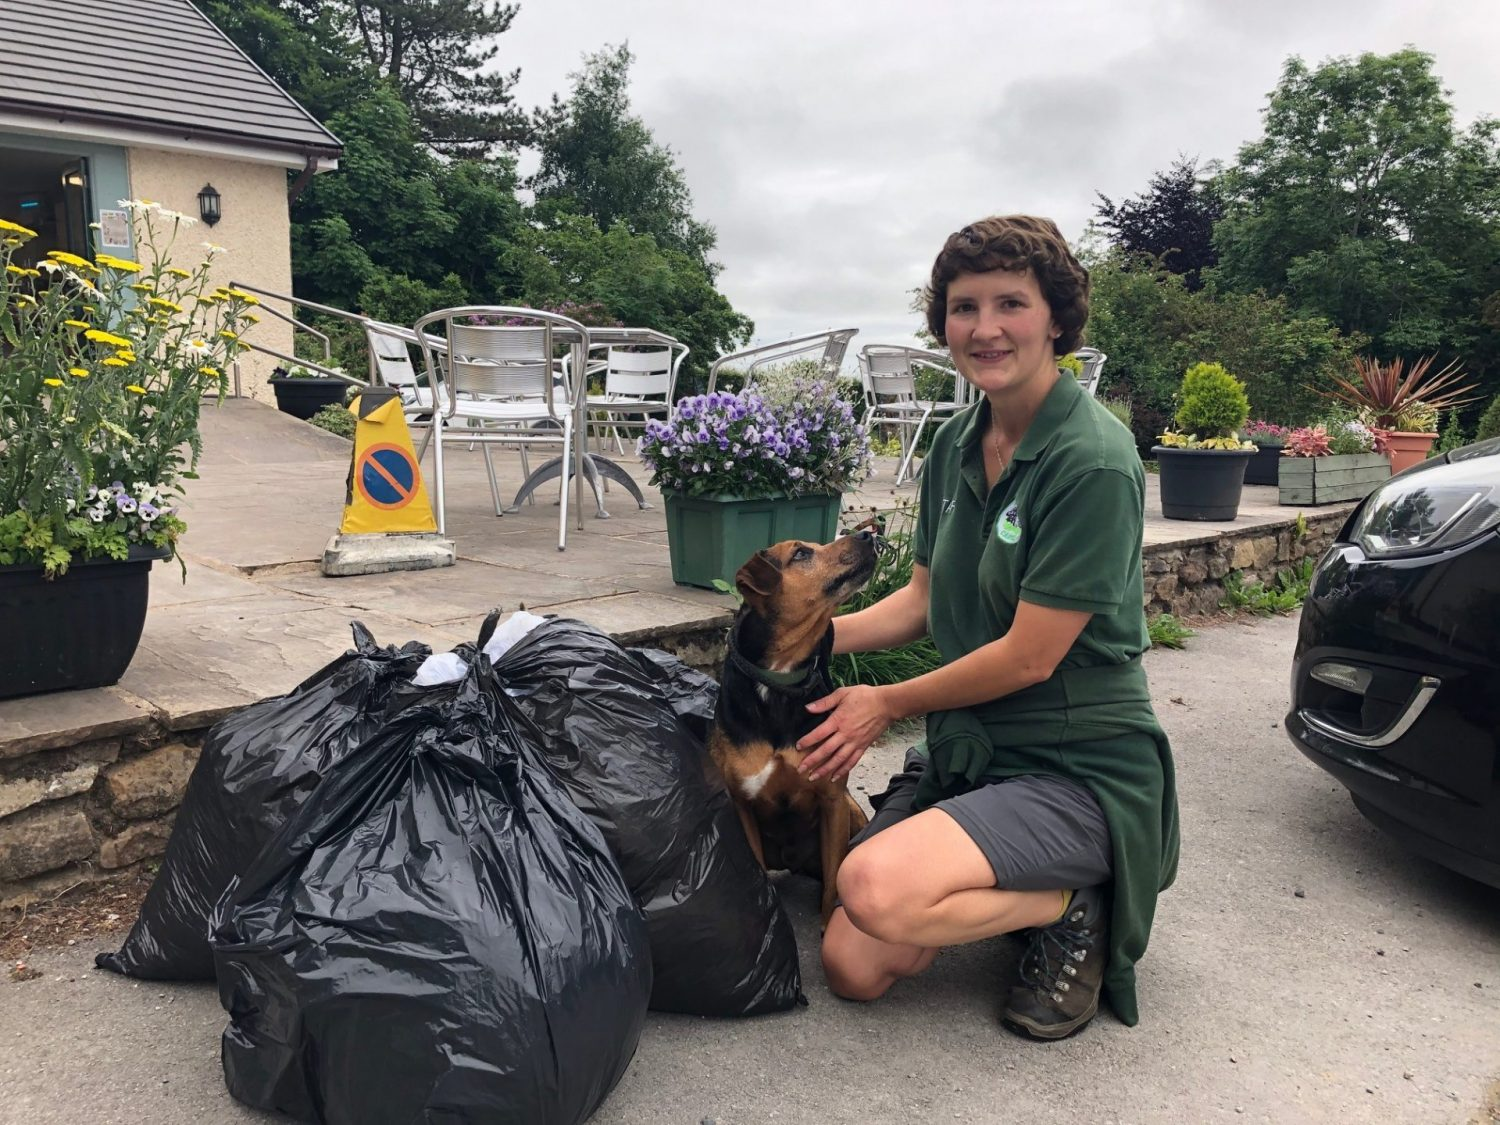 Like Technologies is working towards Net Zero with various recycling initiatives including donating shredded paper to an animal charity.